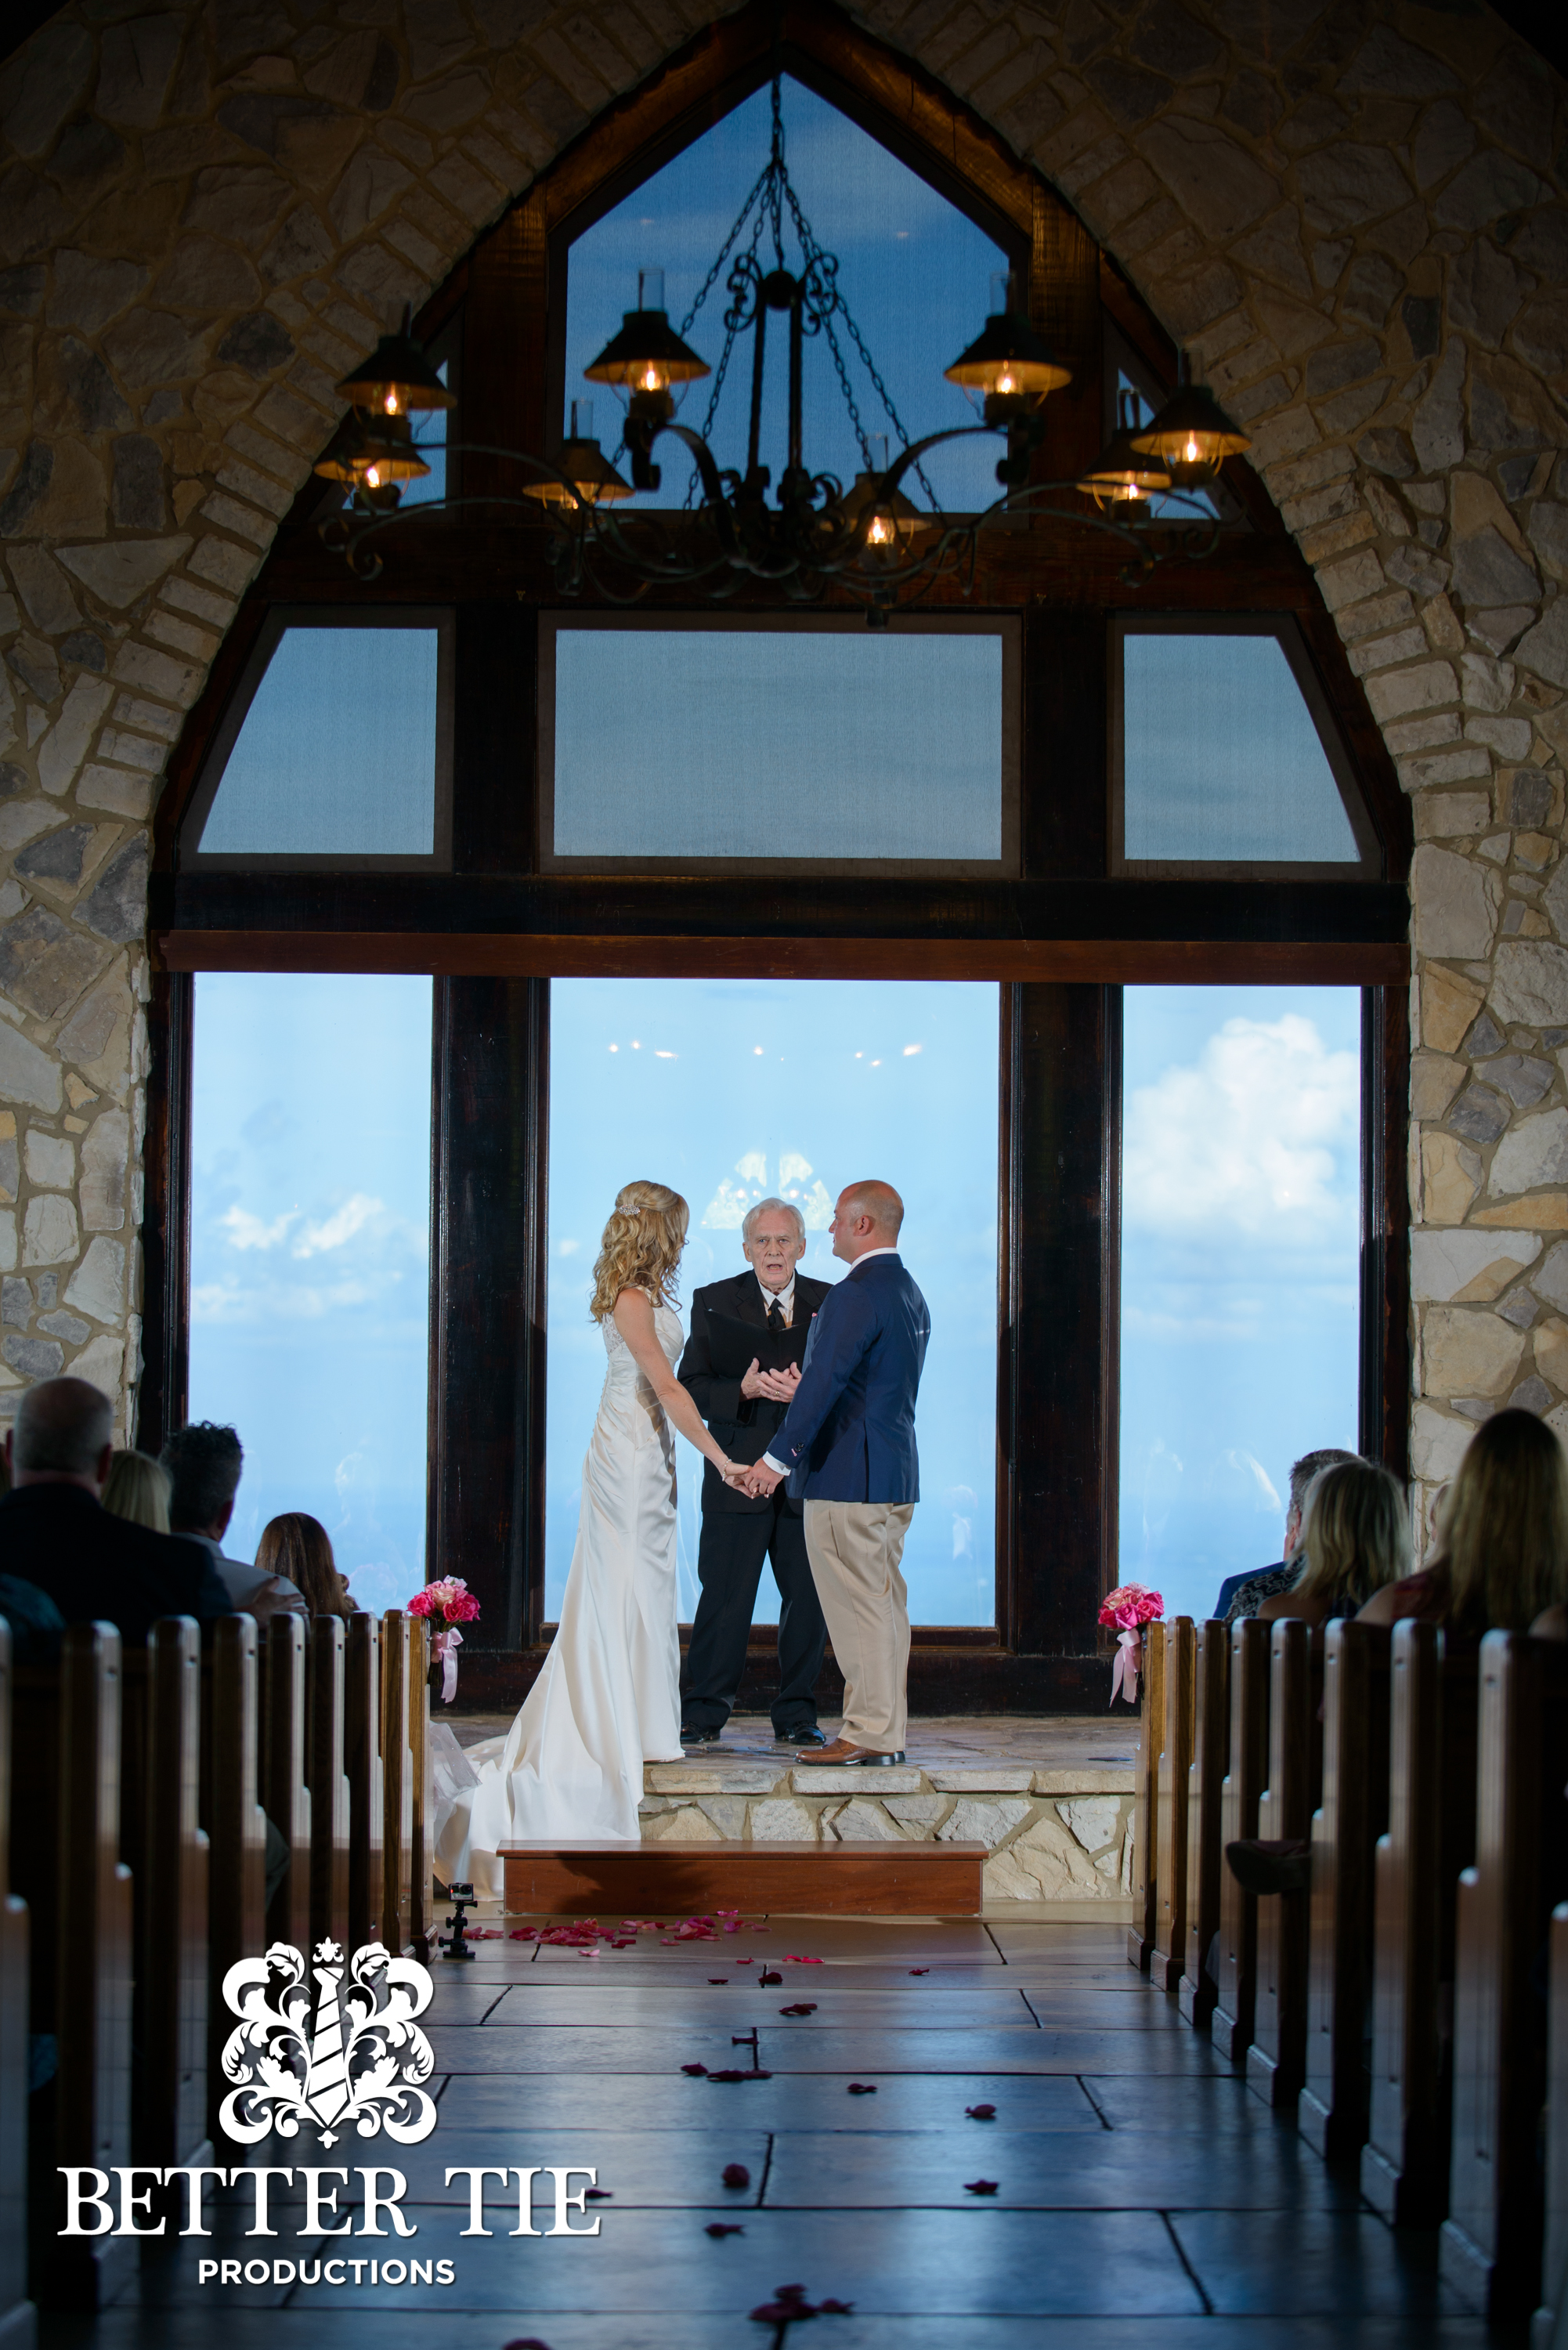 Ashton + Josh | The Cliffs Wedding | Glassy Chapel-91.jpg